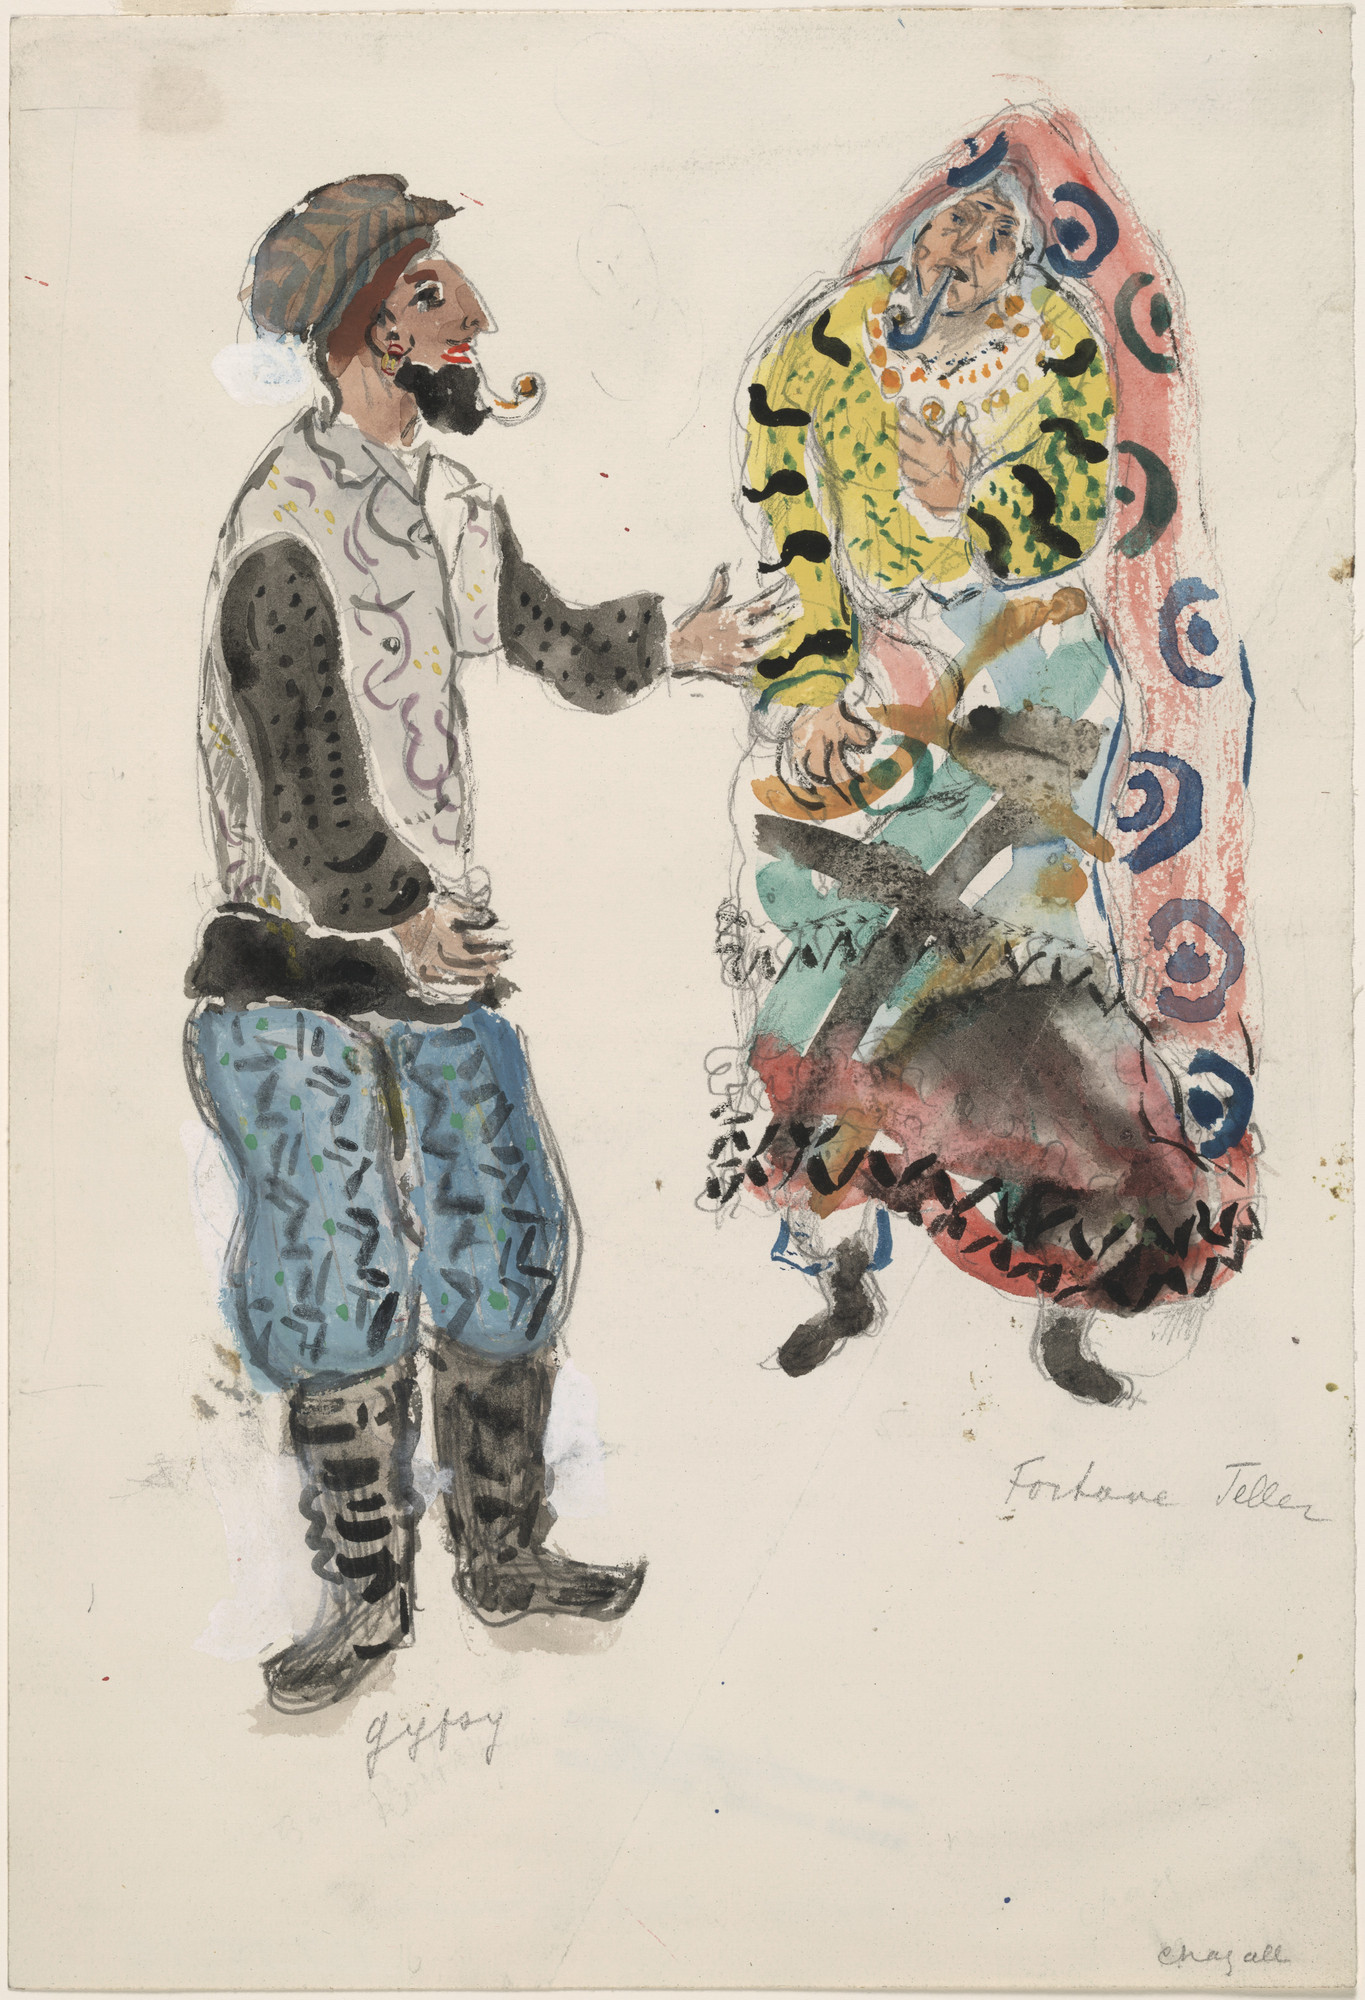 Marc Chagall. A Fortune Teller and a Gypsy, costume design for Aleko (Scene I). (1942)